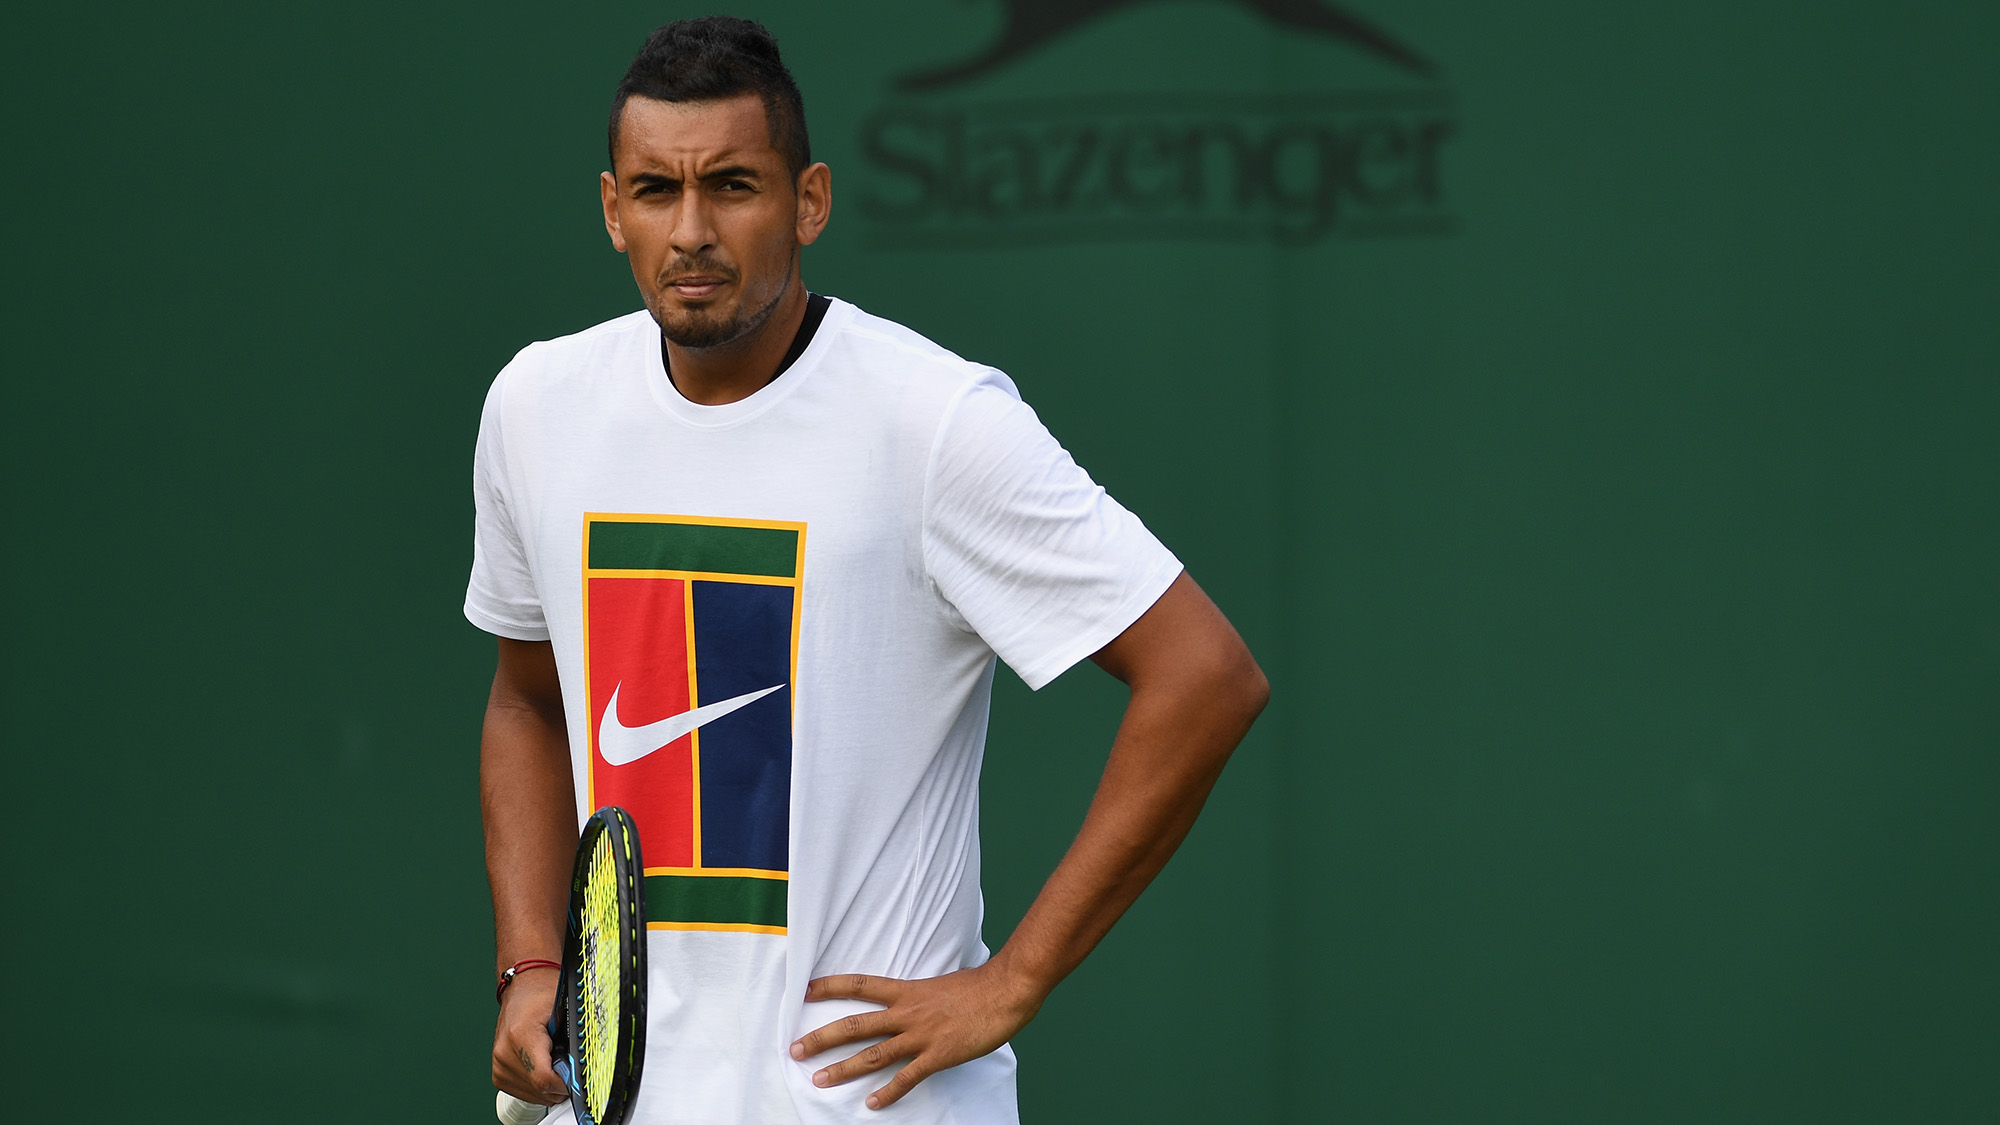 Young tennis stars partying with Kyrgios